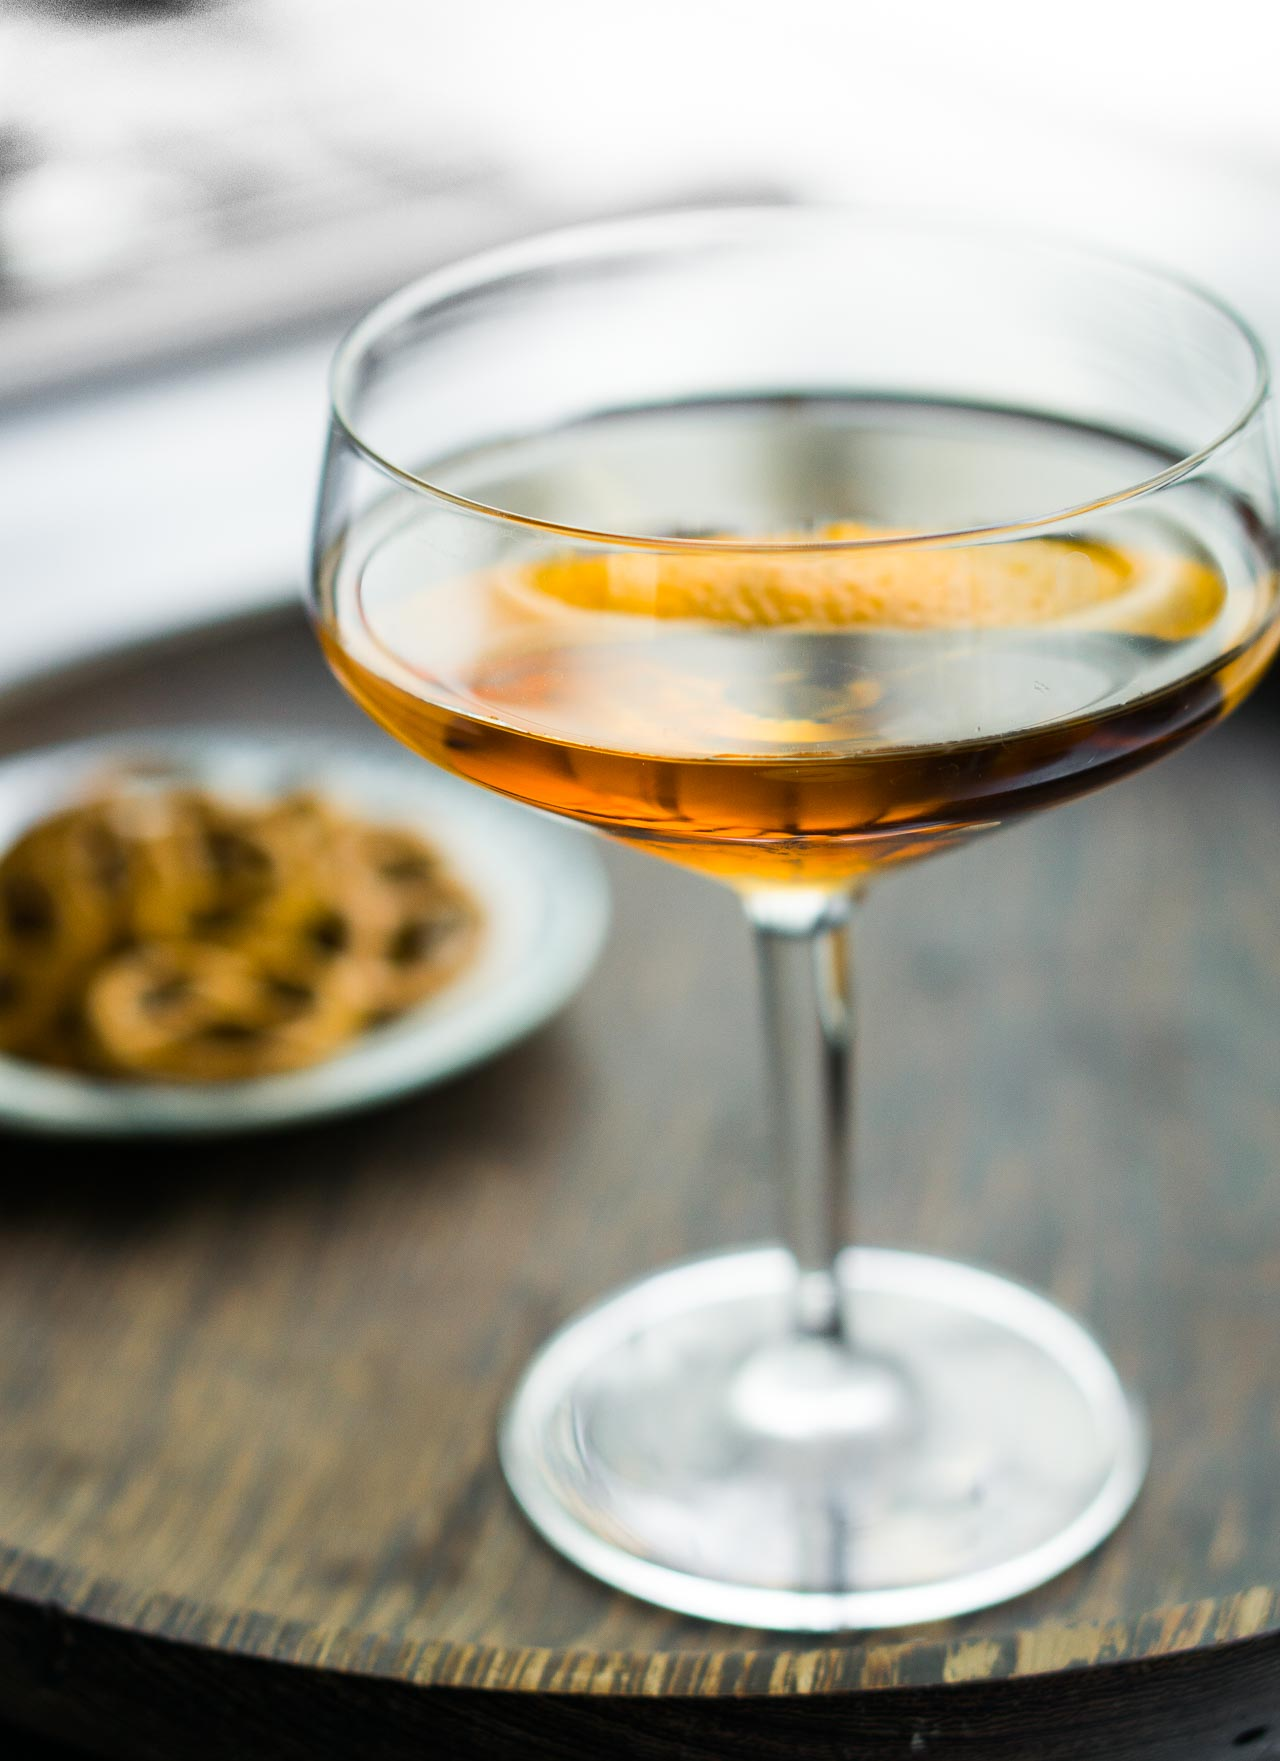 A simple, yet sophisticated classic cocktail recipe.